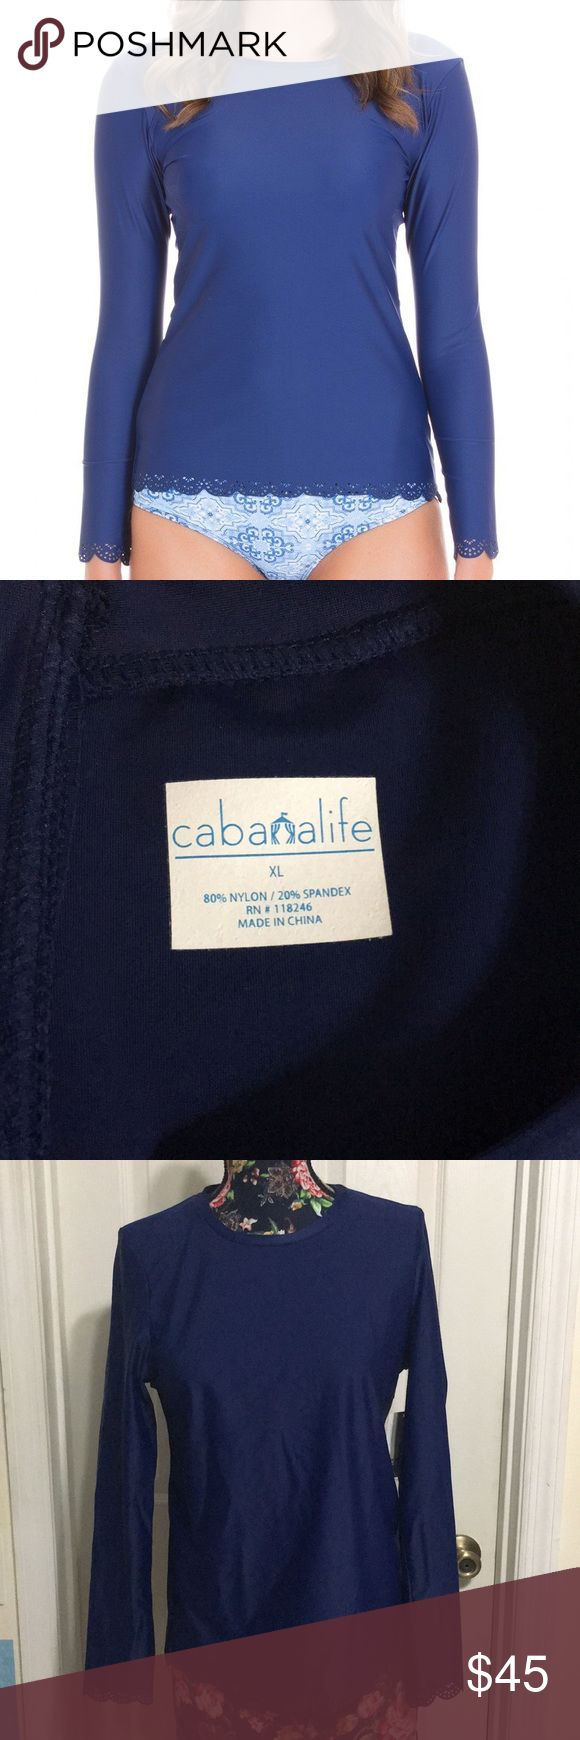 """Cabana Life Scalloped Rashguard Take on the waves or the closest cabana chair in this rash guard from Cabana Life! Navy blue long sleeve rash guard with scalloped hem and cuffs, zips up back. Features 50+ UV protection, blocks 98% UVA and UVB rays. Size L, NWT, never worn. Cover photo courtesy of cabanalife.com.  Measures approximately: Bust: 40"""" Torso: 36"""" Length: 25"""" Sleeve Length: 25""""  🚫TRADES🚫 🚫OFFLINE TRANSACTIONS🚫  ✅BUNDLES✅ ✅REASONABLE OFFERS✅  Happy Poshing! 😄 Cabana Life Swim"""